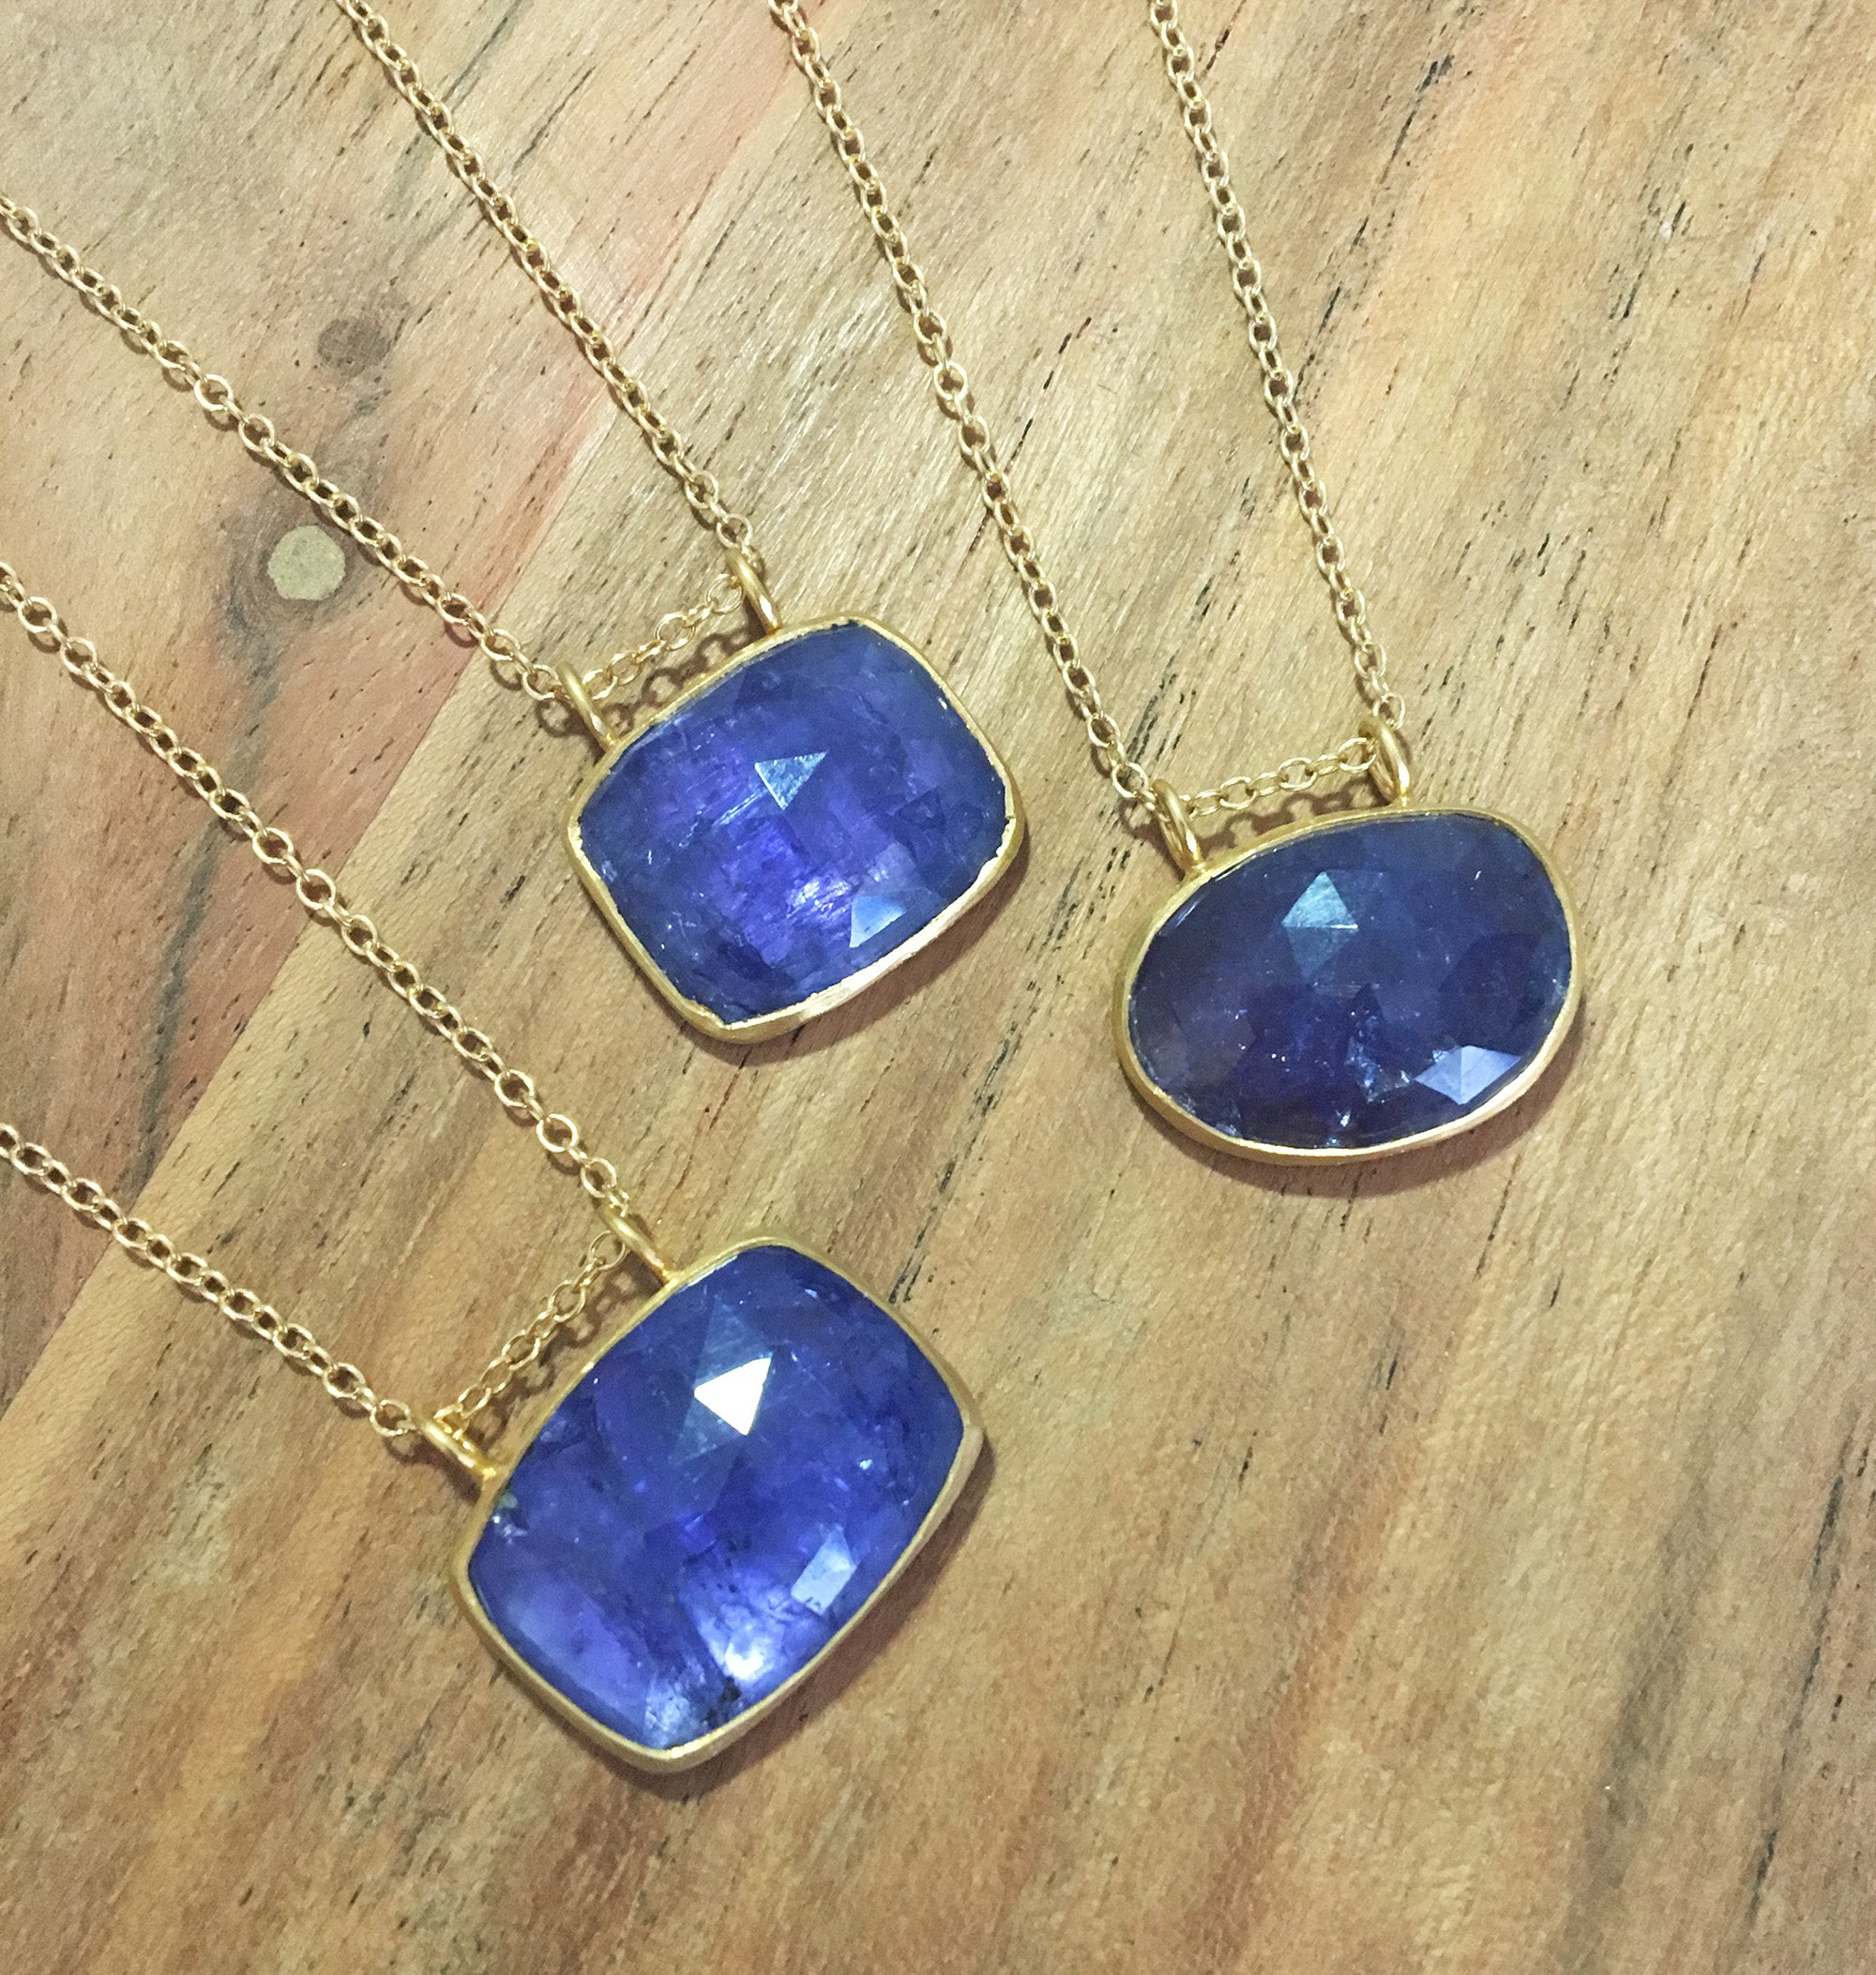 helene necklace one de tanzanite a by taillac l ne purple first h kind of large marie loading lady